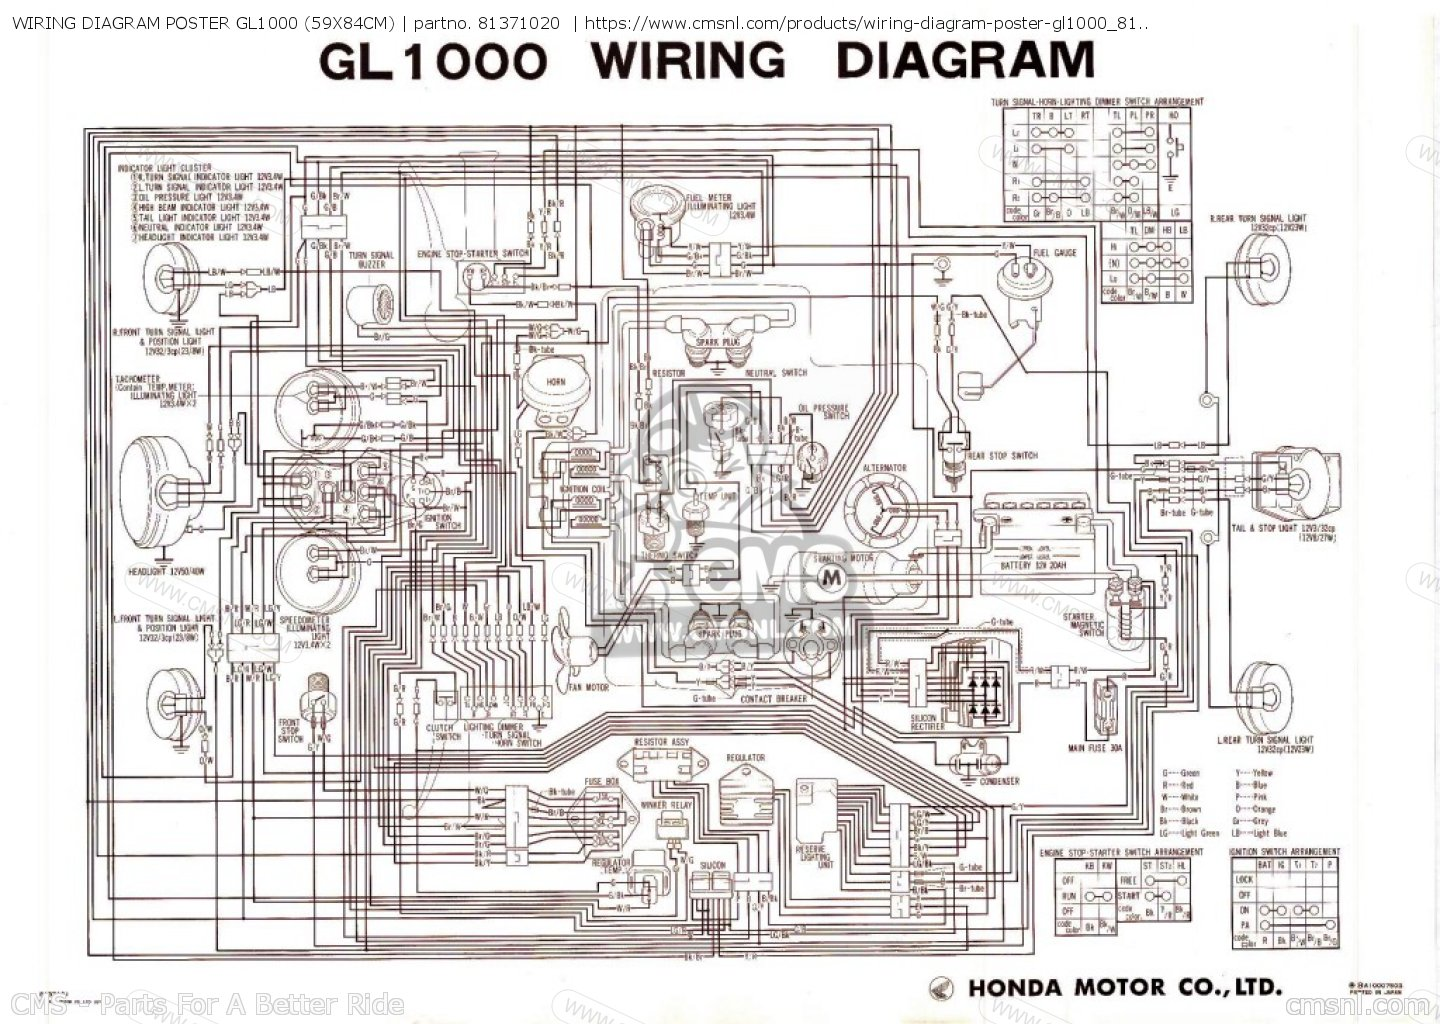 hight resolution of wiring diagram poster gl1000 59x84cm other 81371020 honda goldwing gl1800 wiring diagram honda goldwing wiring diagrams